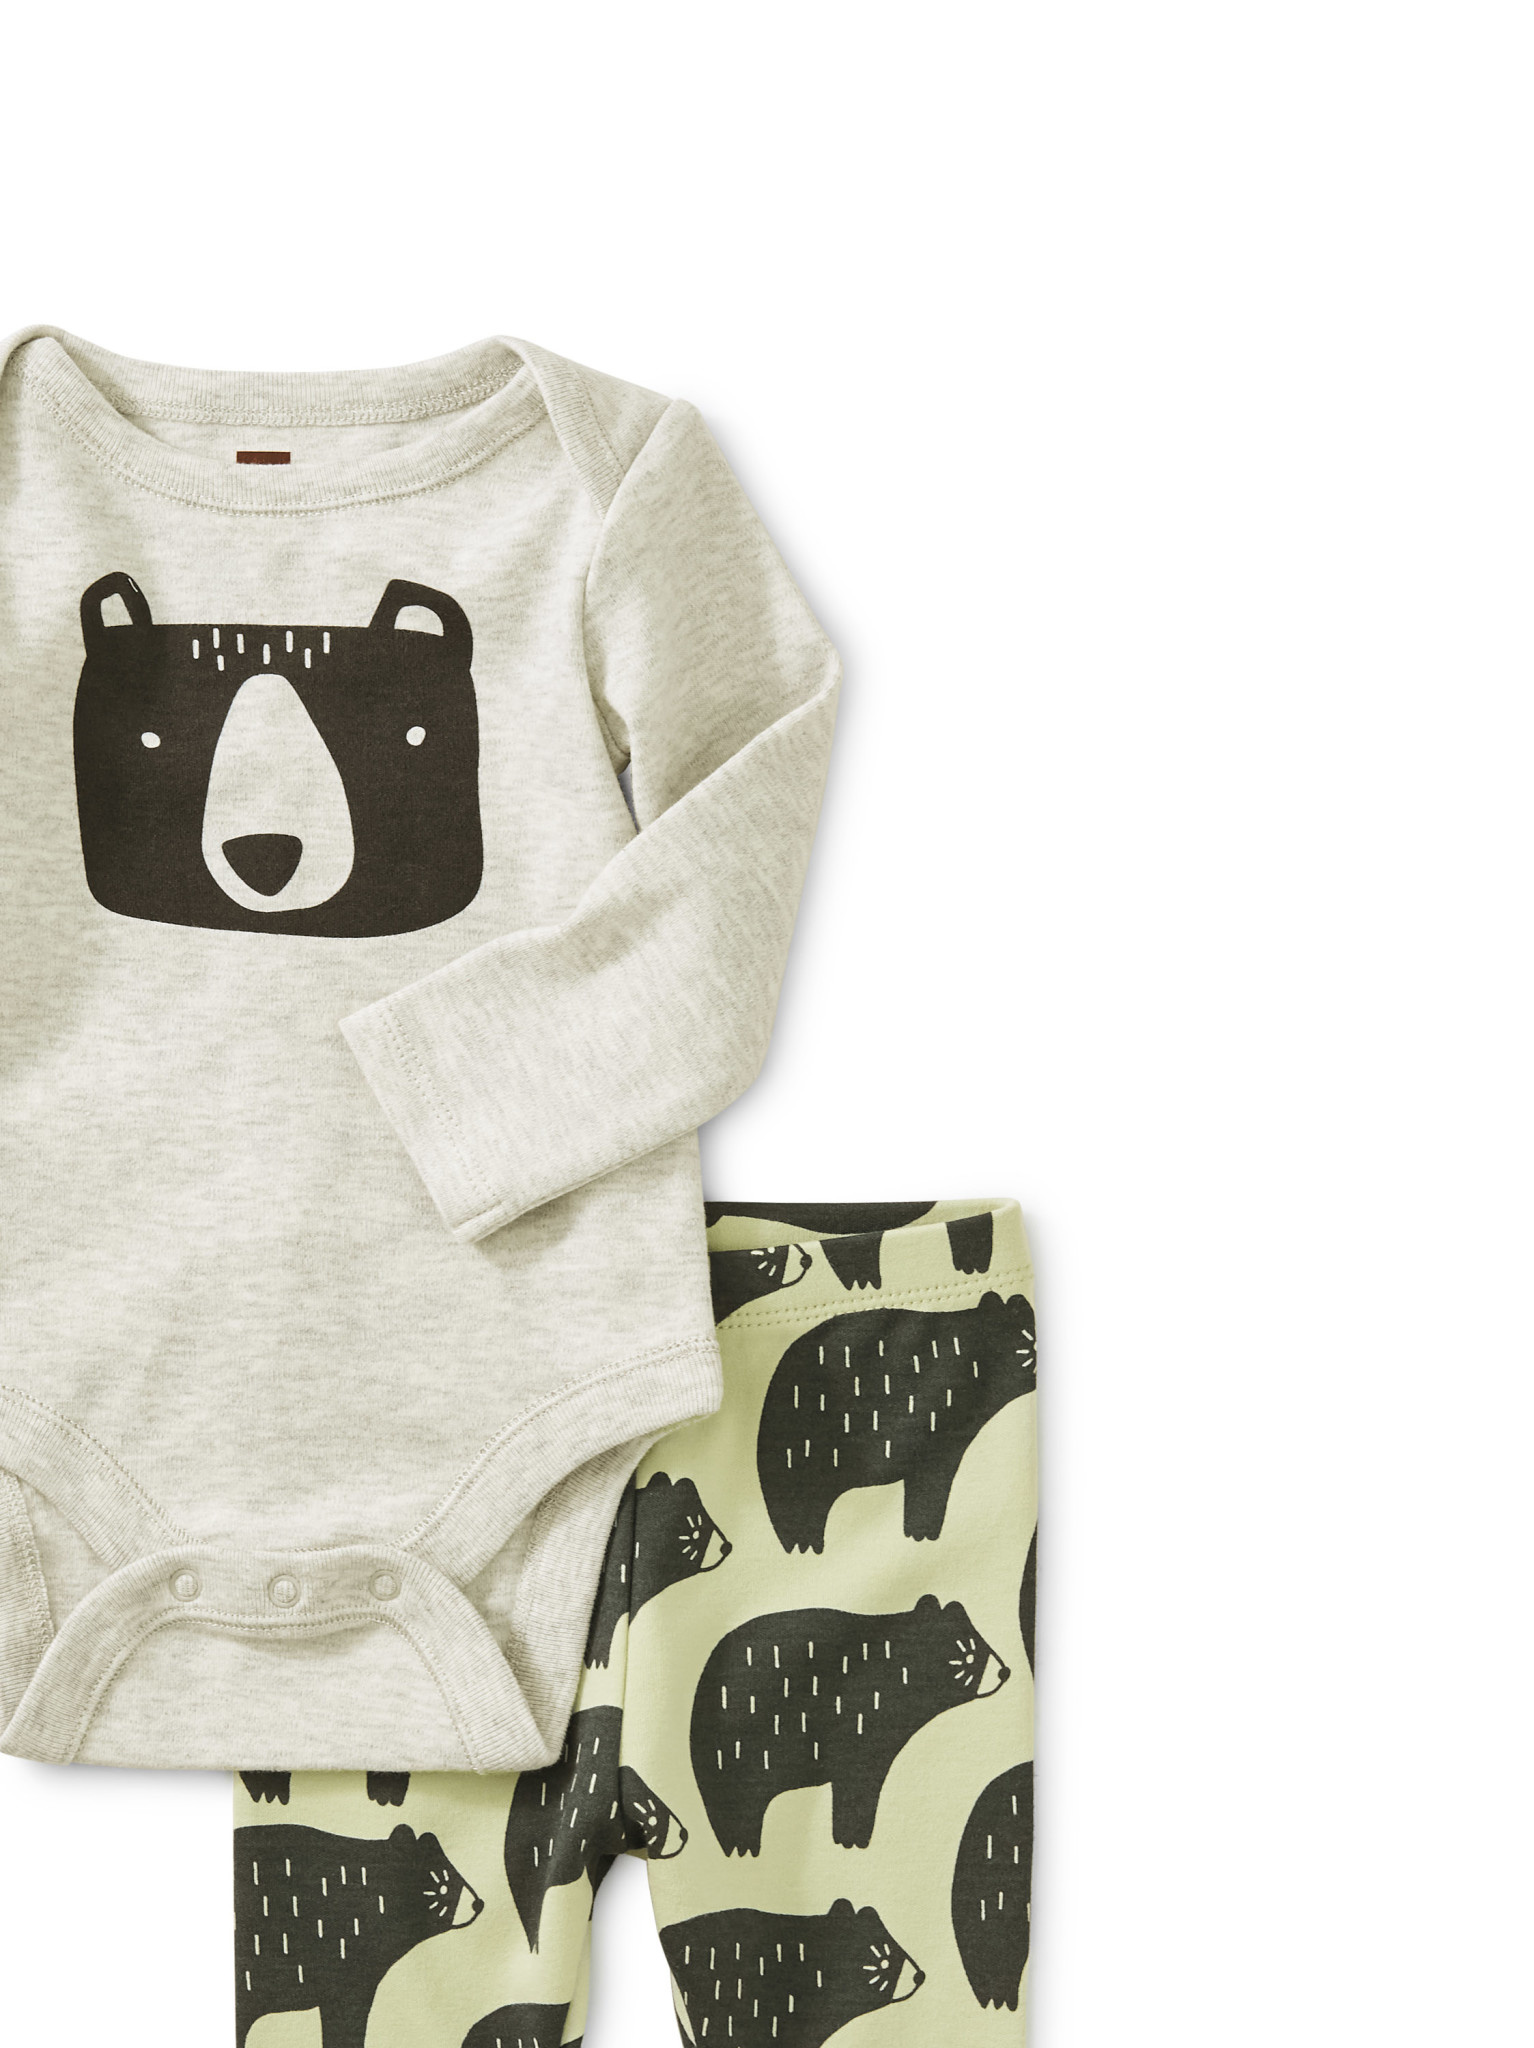 Tea Collection Cuddly Cubs Bodysuit Baby Outfit